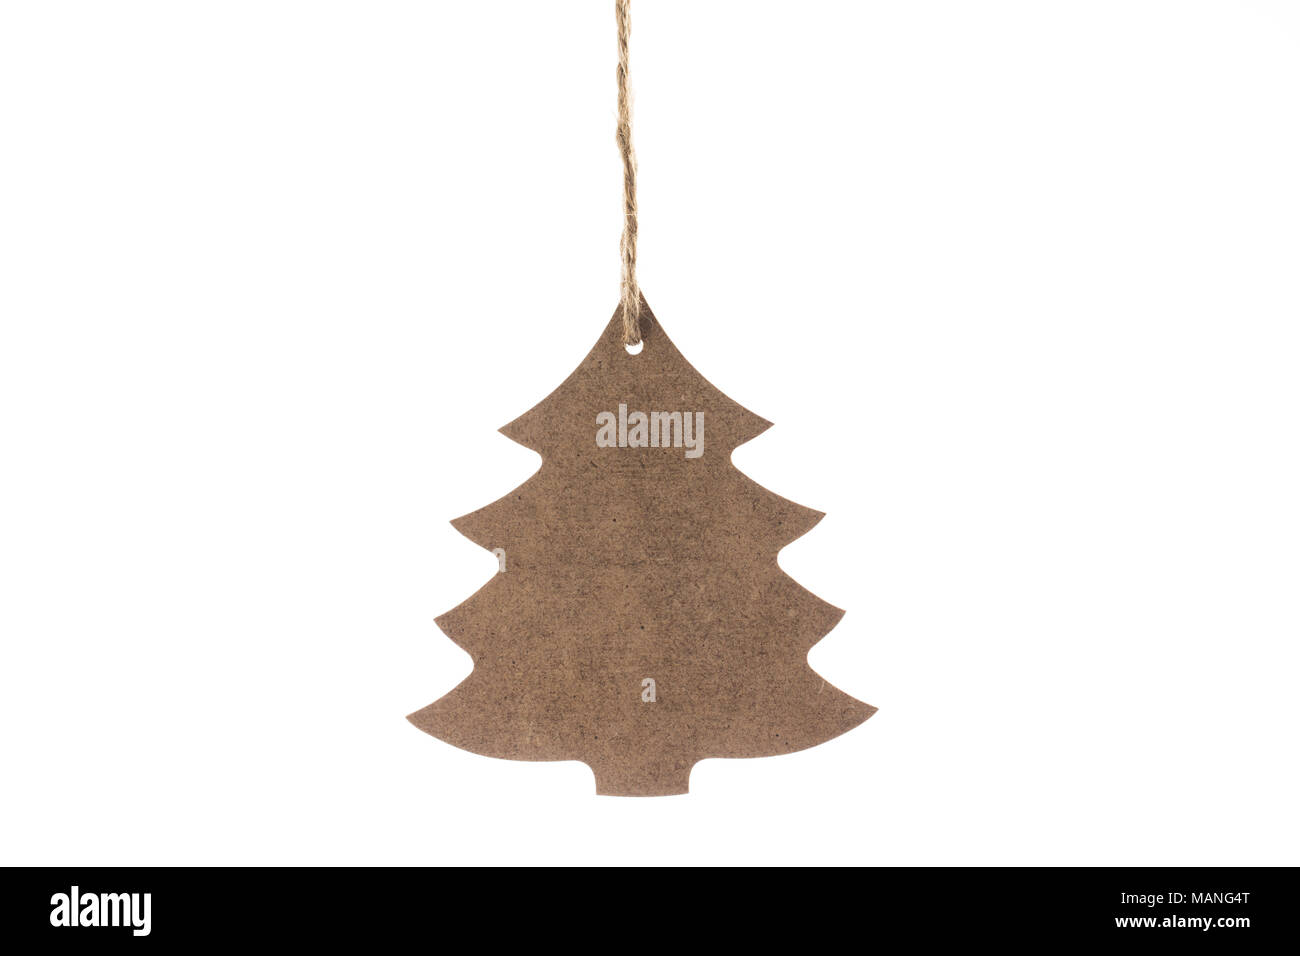 Wooden Christmas tree with star for decoration isolated on a white background Stock Photo